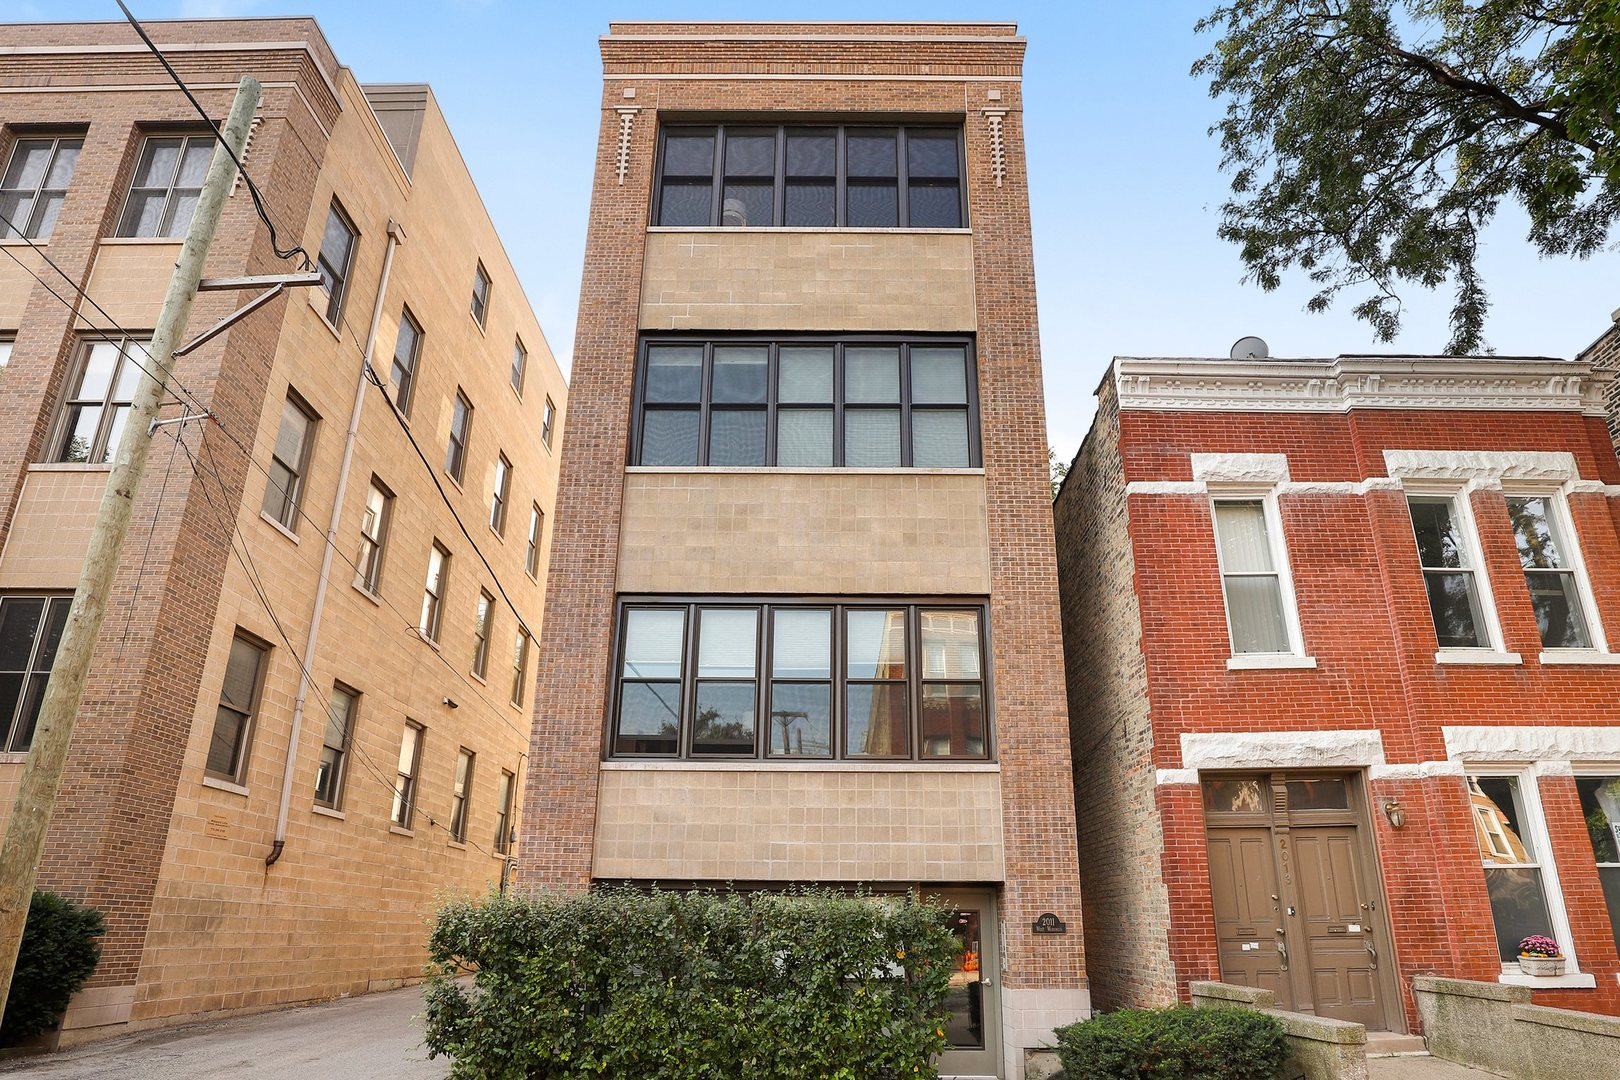 Luxurious Bucktown PENTHOUSE Loft with 4 exposures and outdoor space galore. Not your cookie-cutter